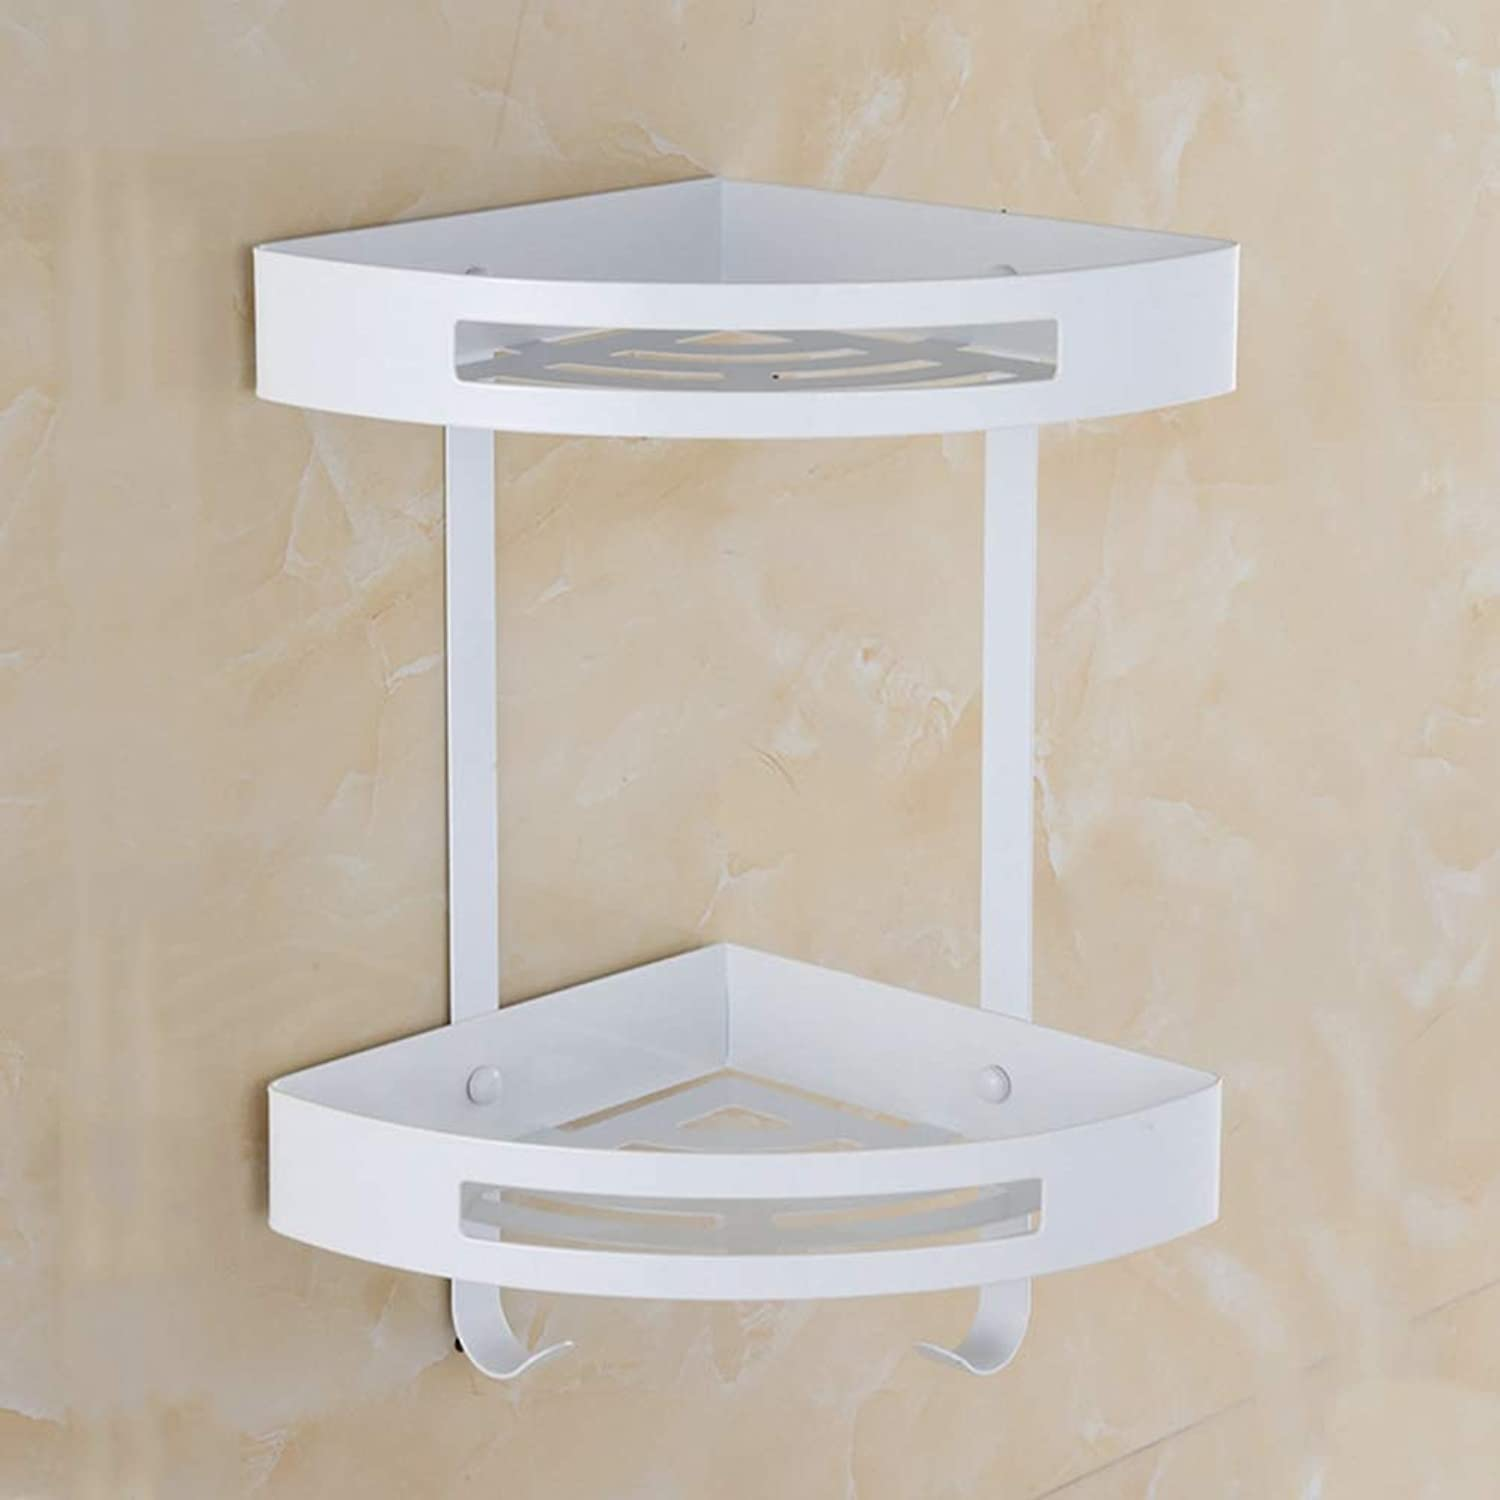 LUDSUY Bathroom accessoriesToilet Bathroom Shelf Bathroom Shelving Triangle Corner Shelf Storage Rack Shelf Bathroom Wall